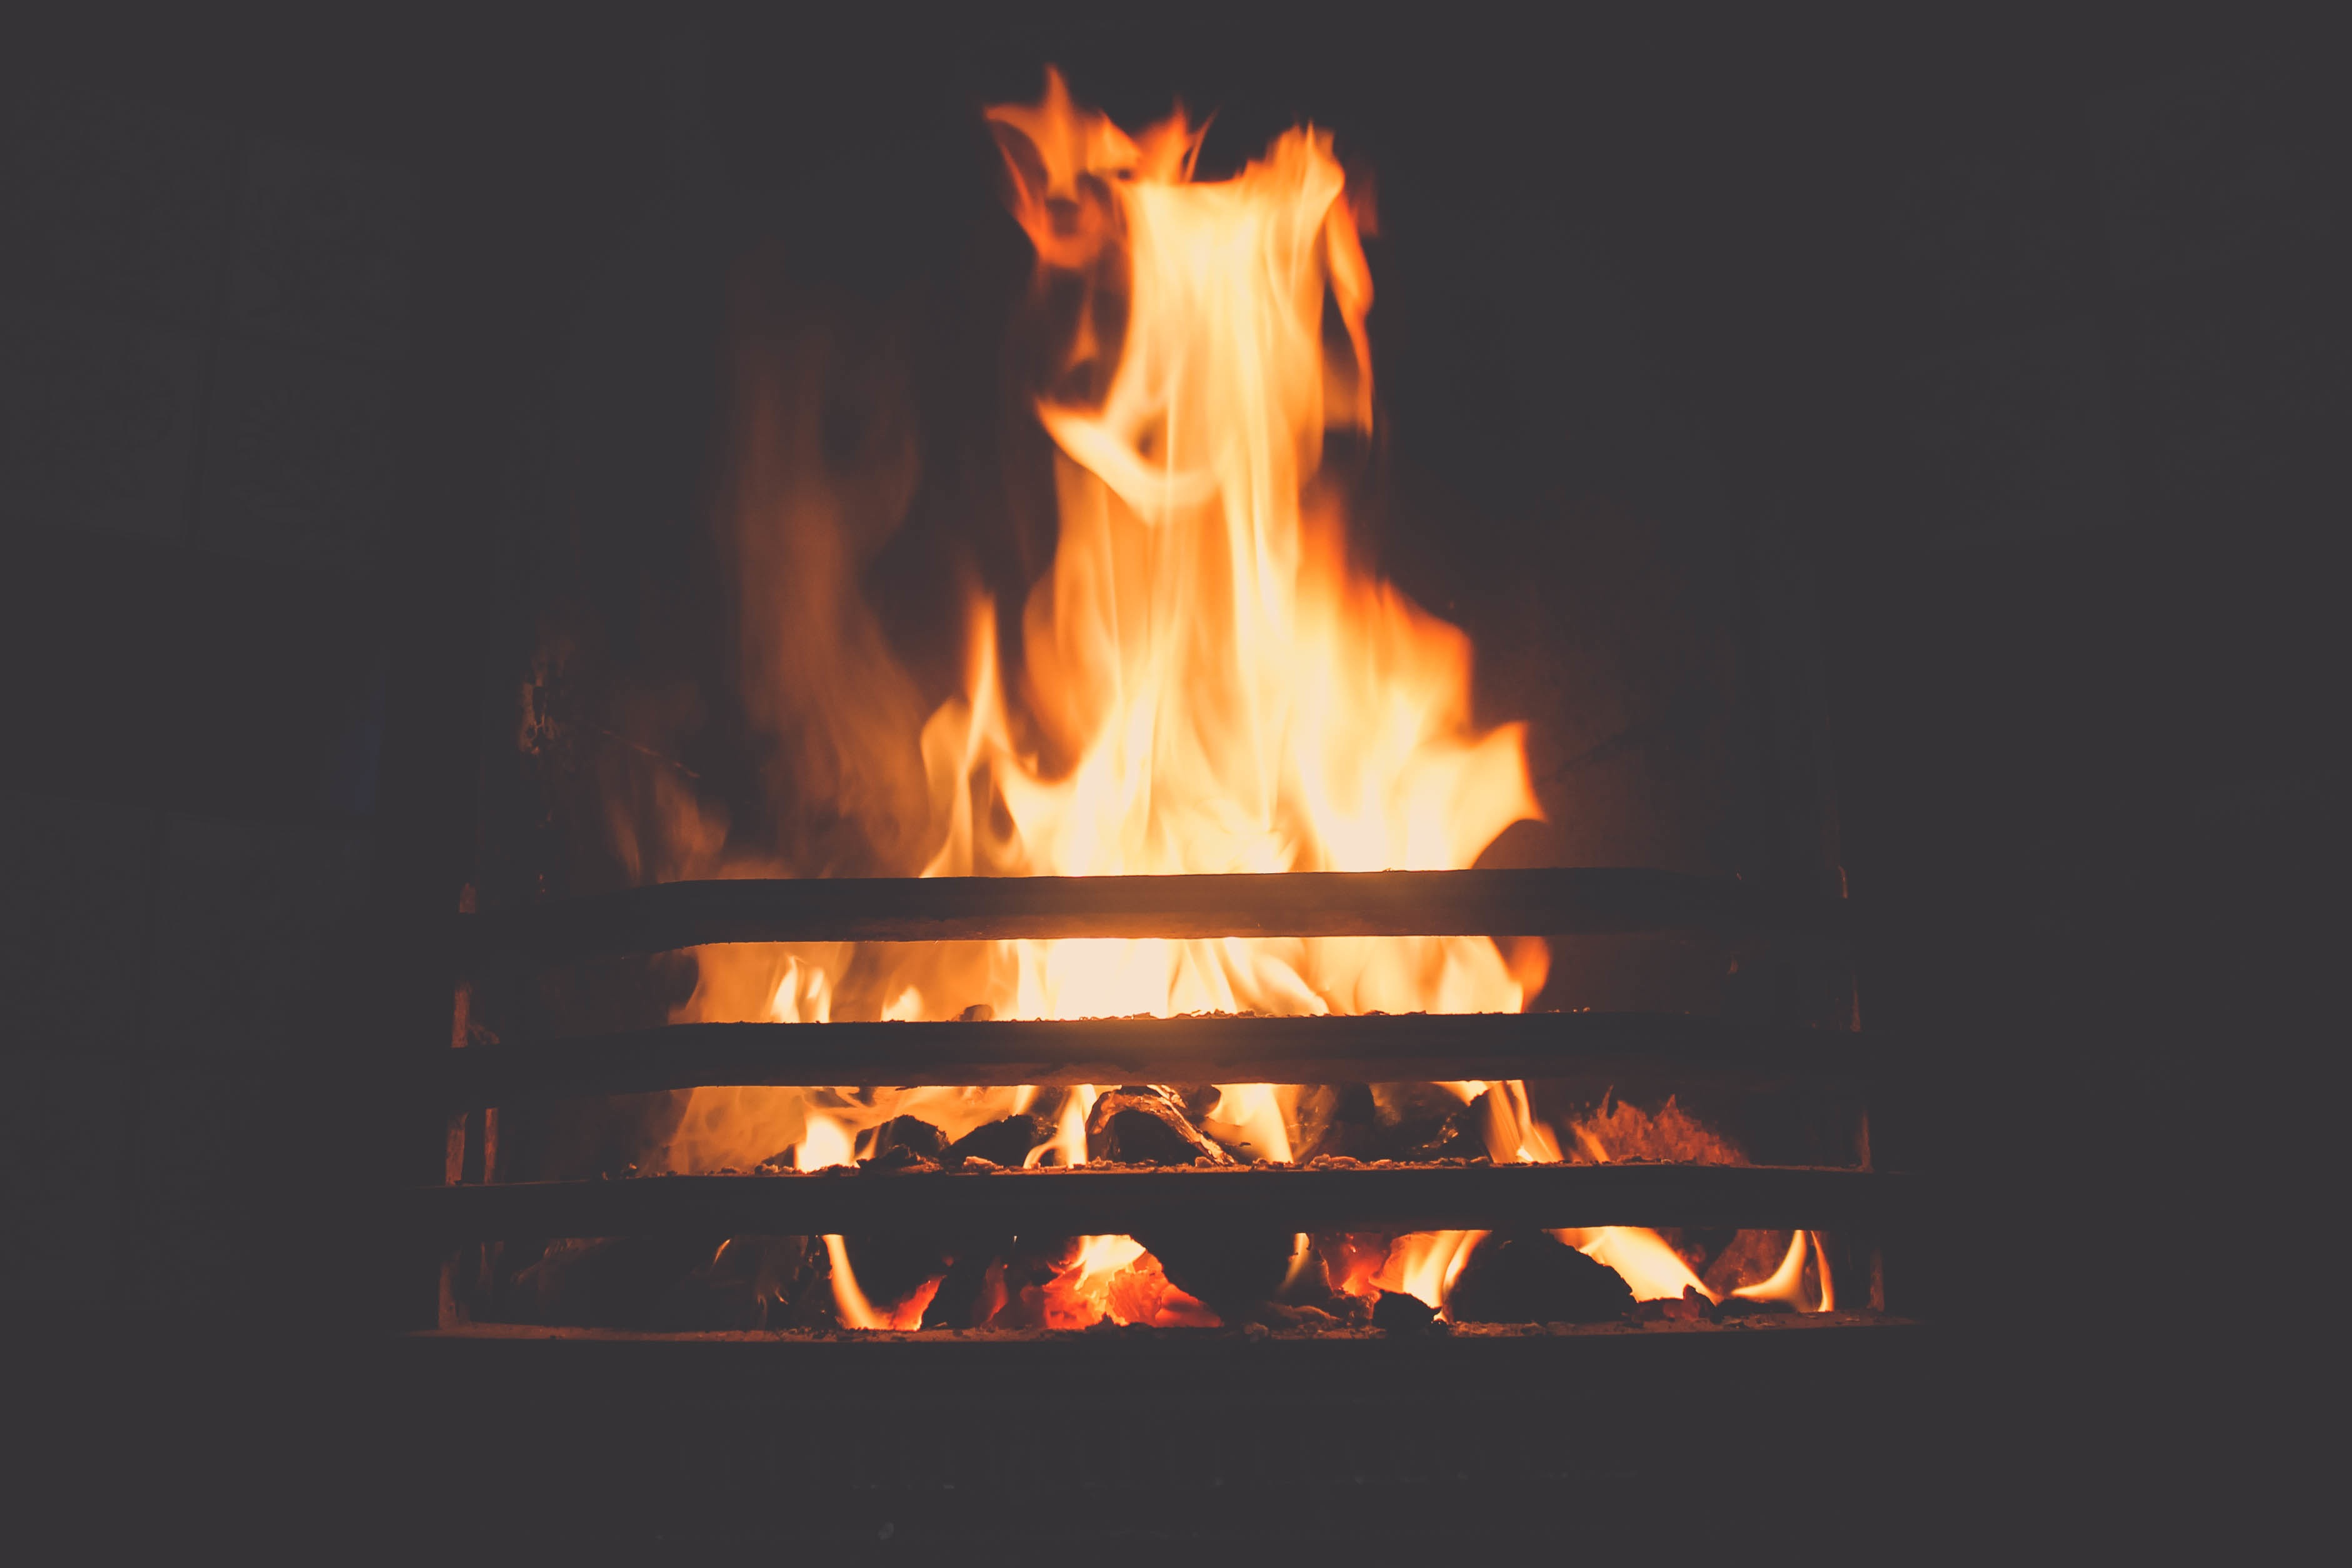 A log burning in a fireplace.